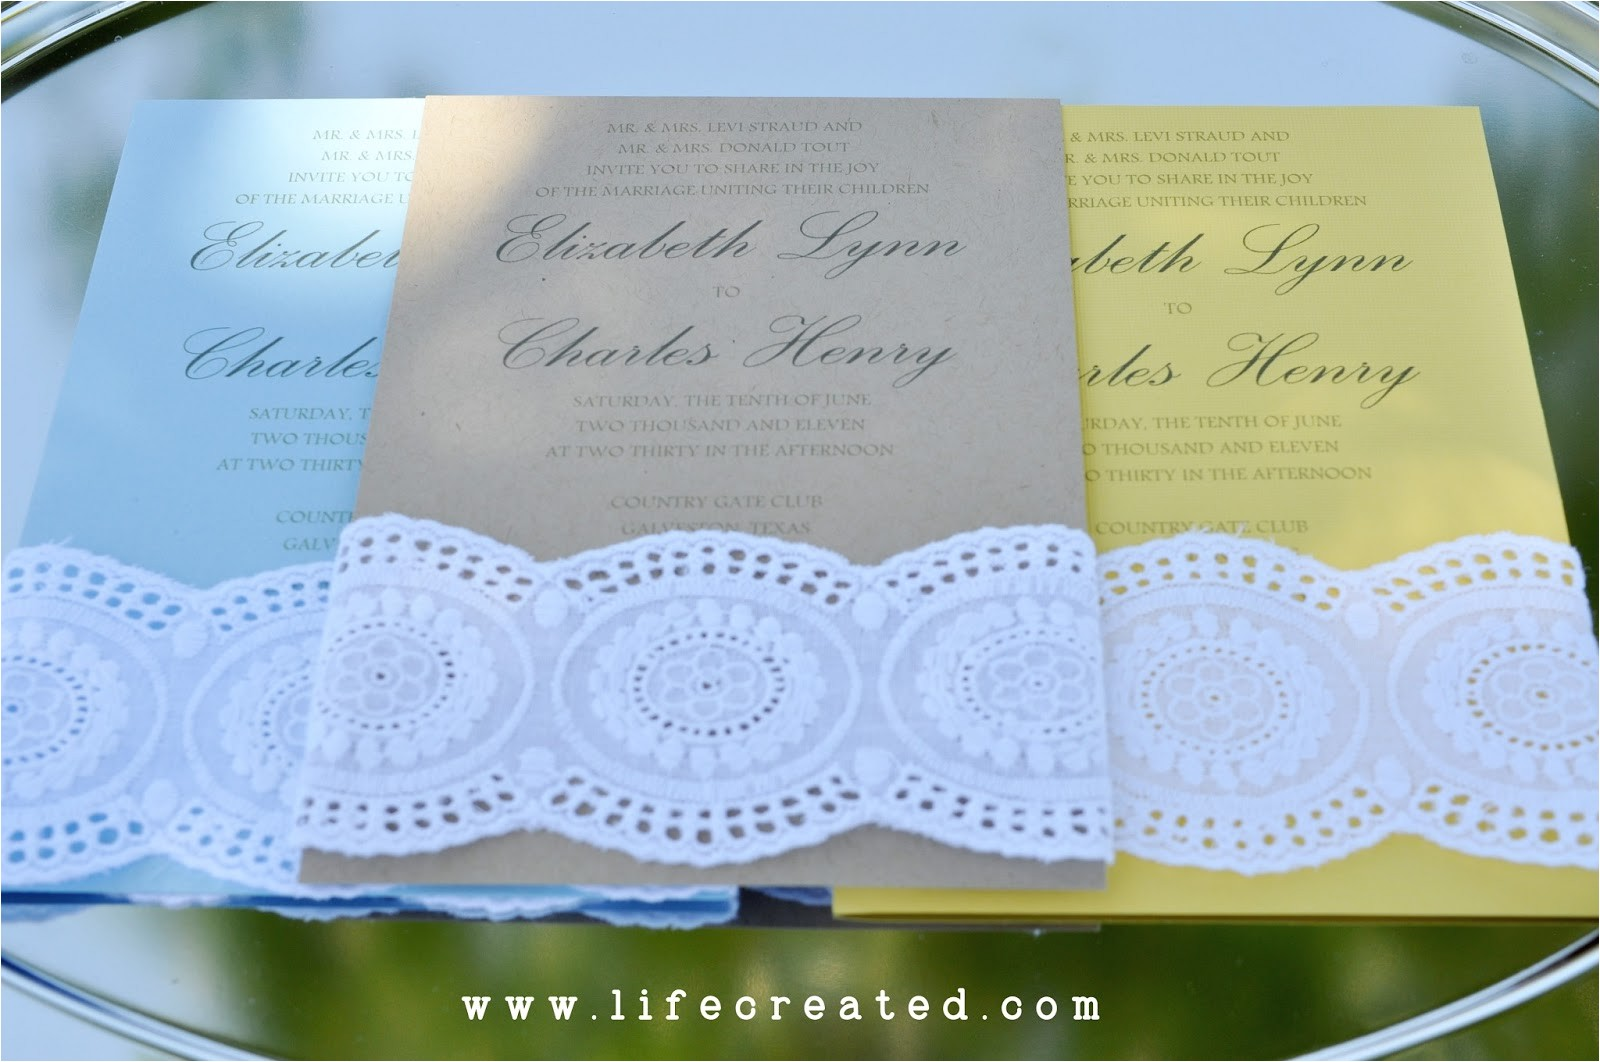 designs how much do wedding invitations cost on average with h